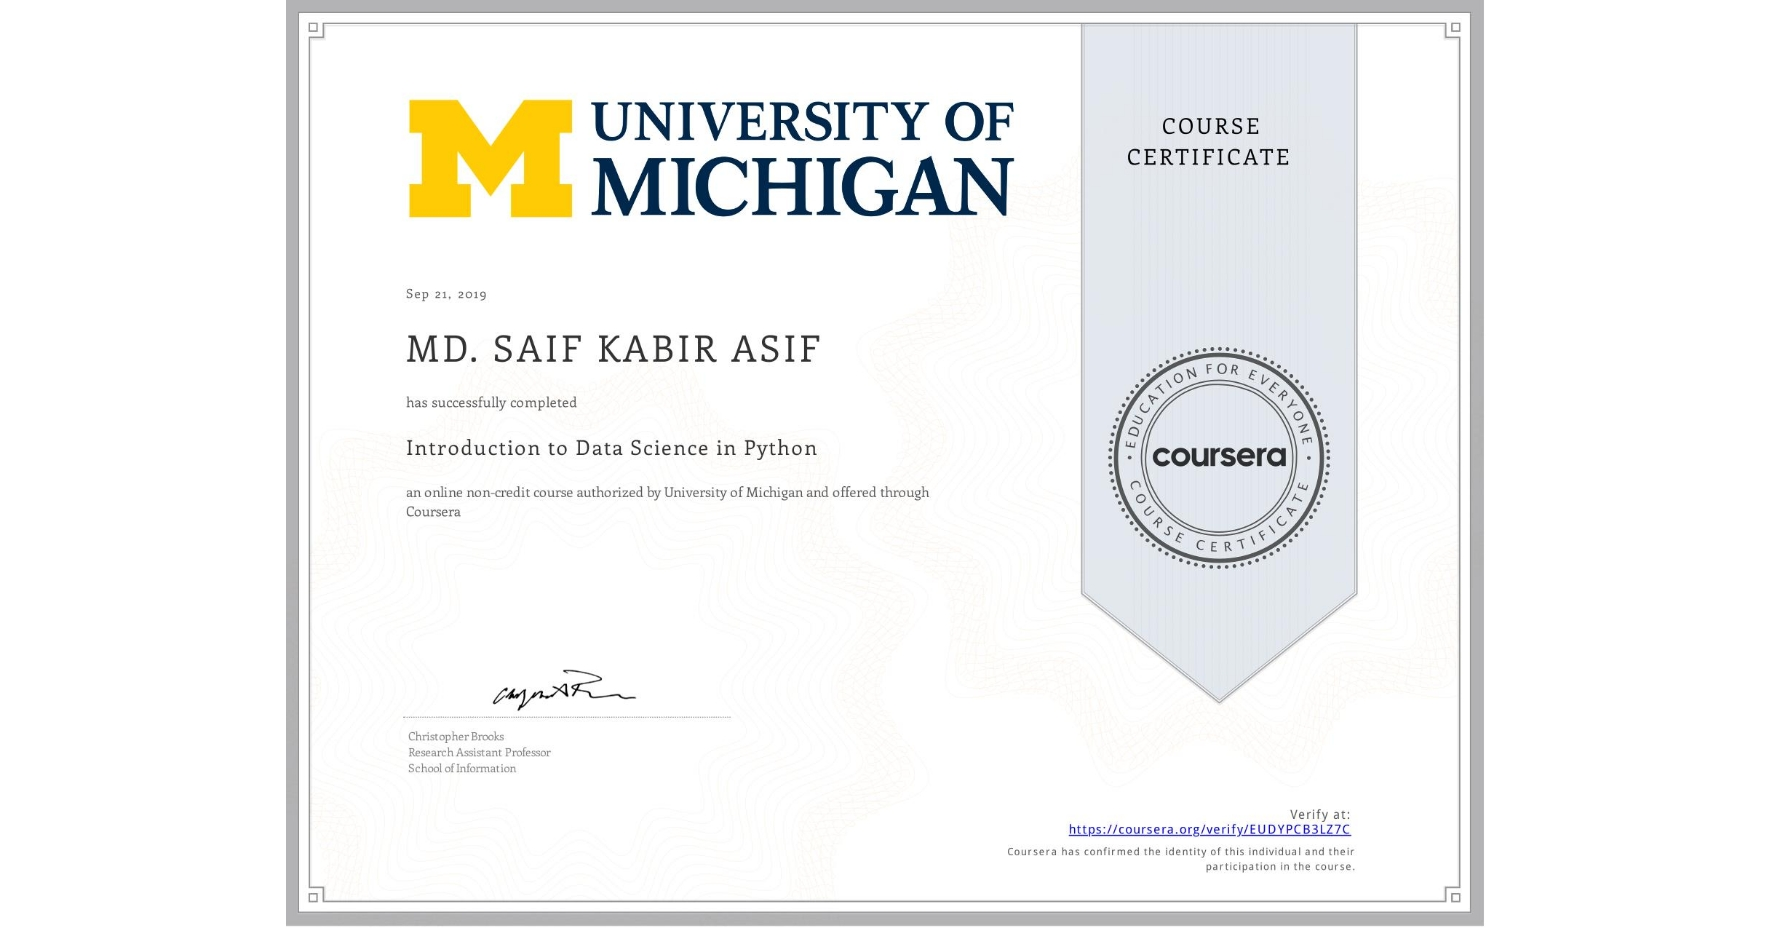 View certificate for Md. Saif Kabir  Asif, Introduction to Data Science in Python, an online non-credit course authorized by University of Michigan and offered through Coursera